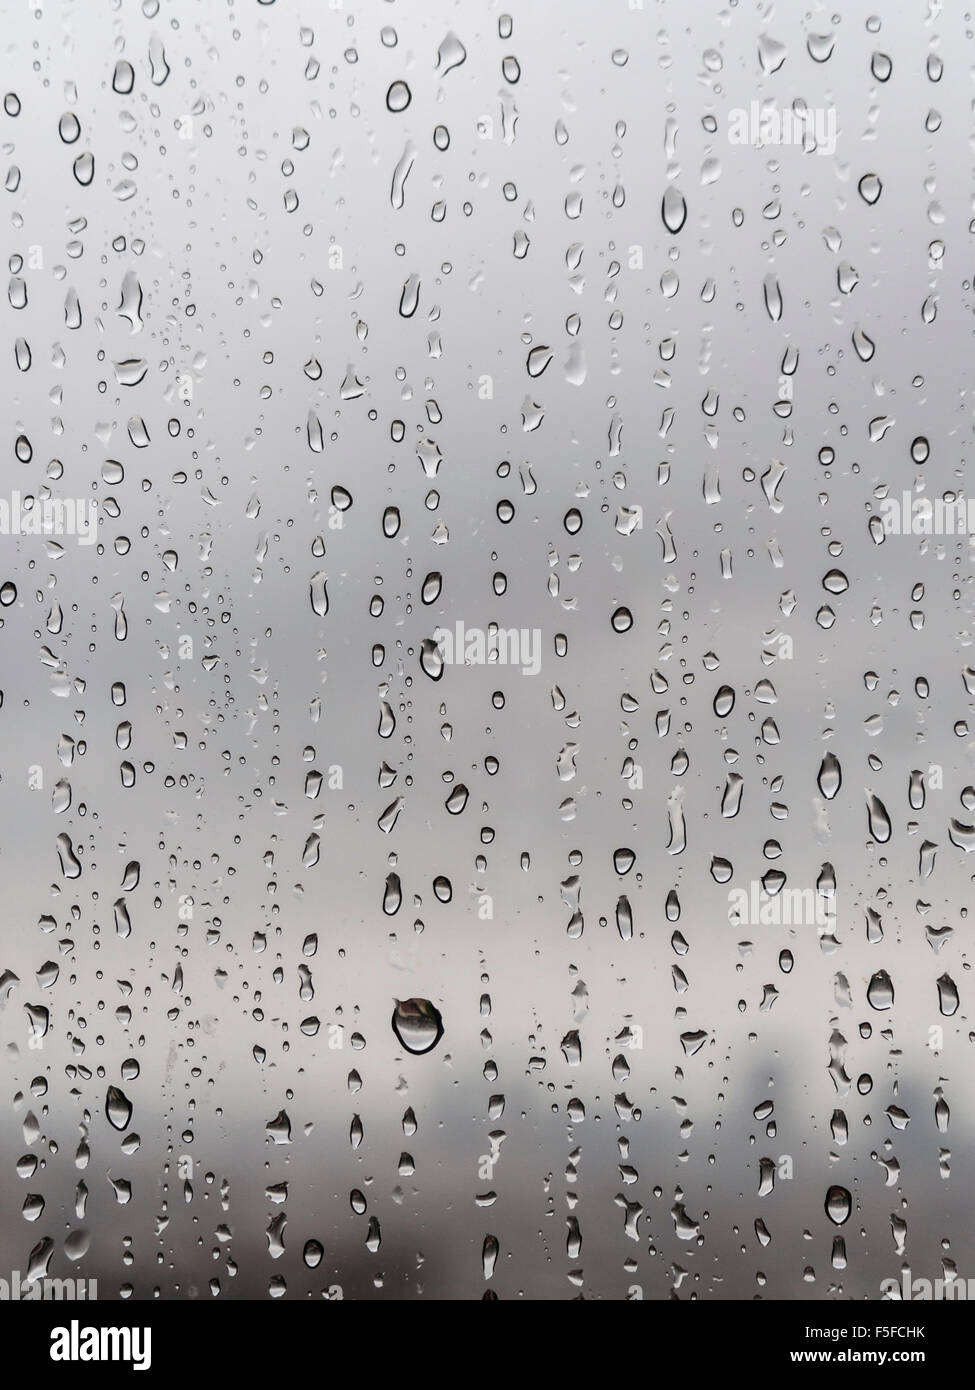 After heavy rainfall, many raindrops are trickling down a window. Diffuse silhouette of a city skyline emerges in Stock Photo